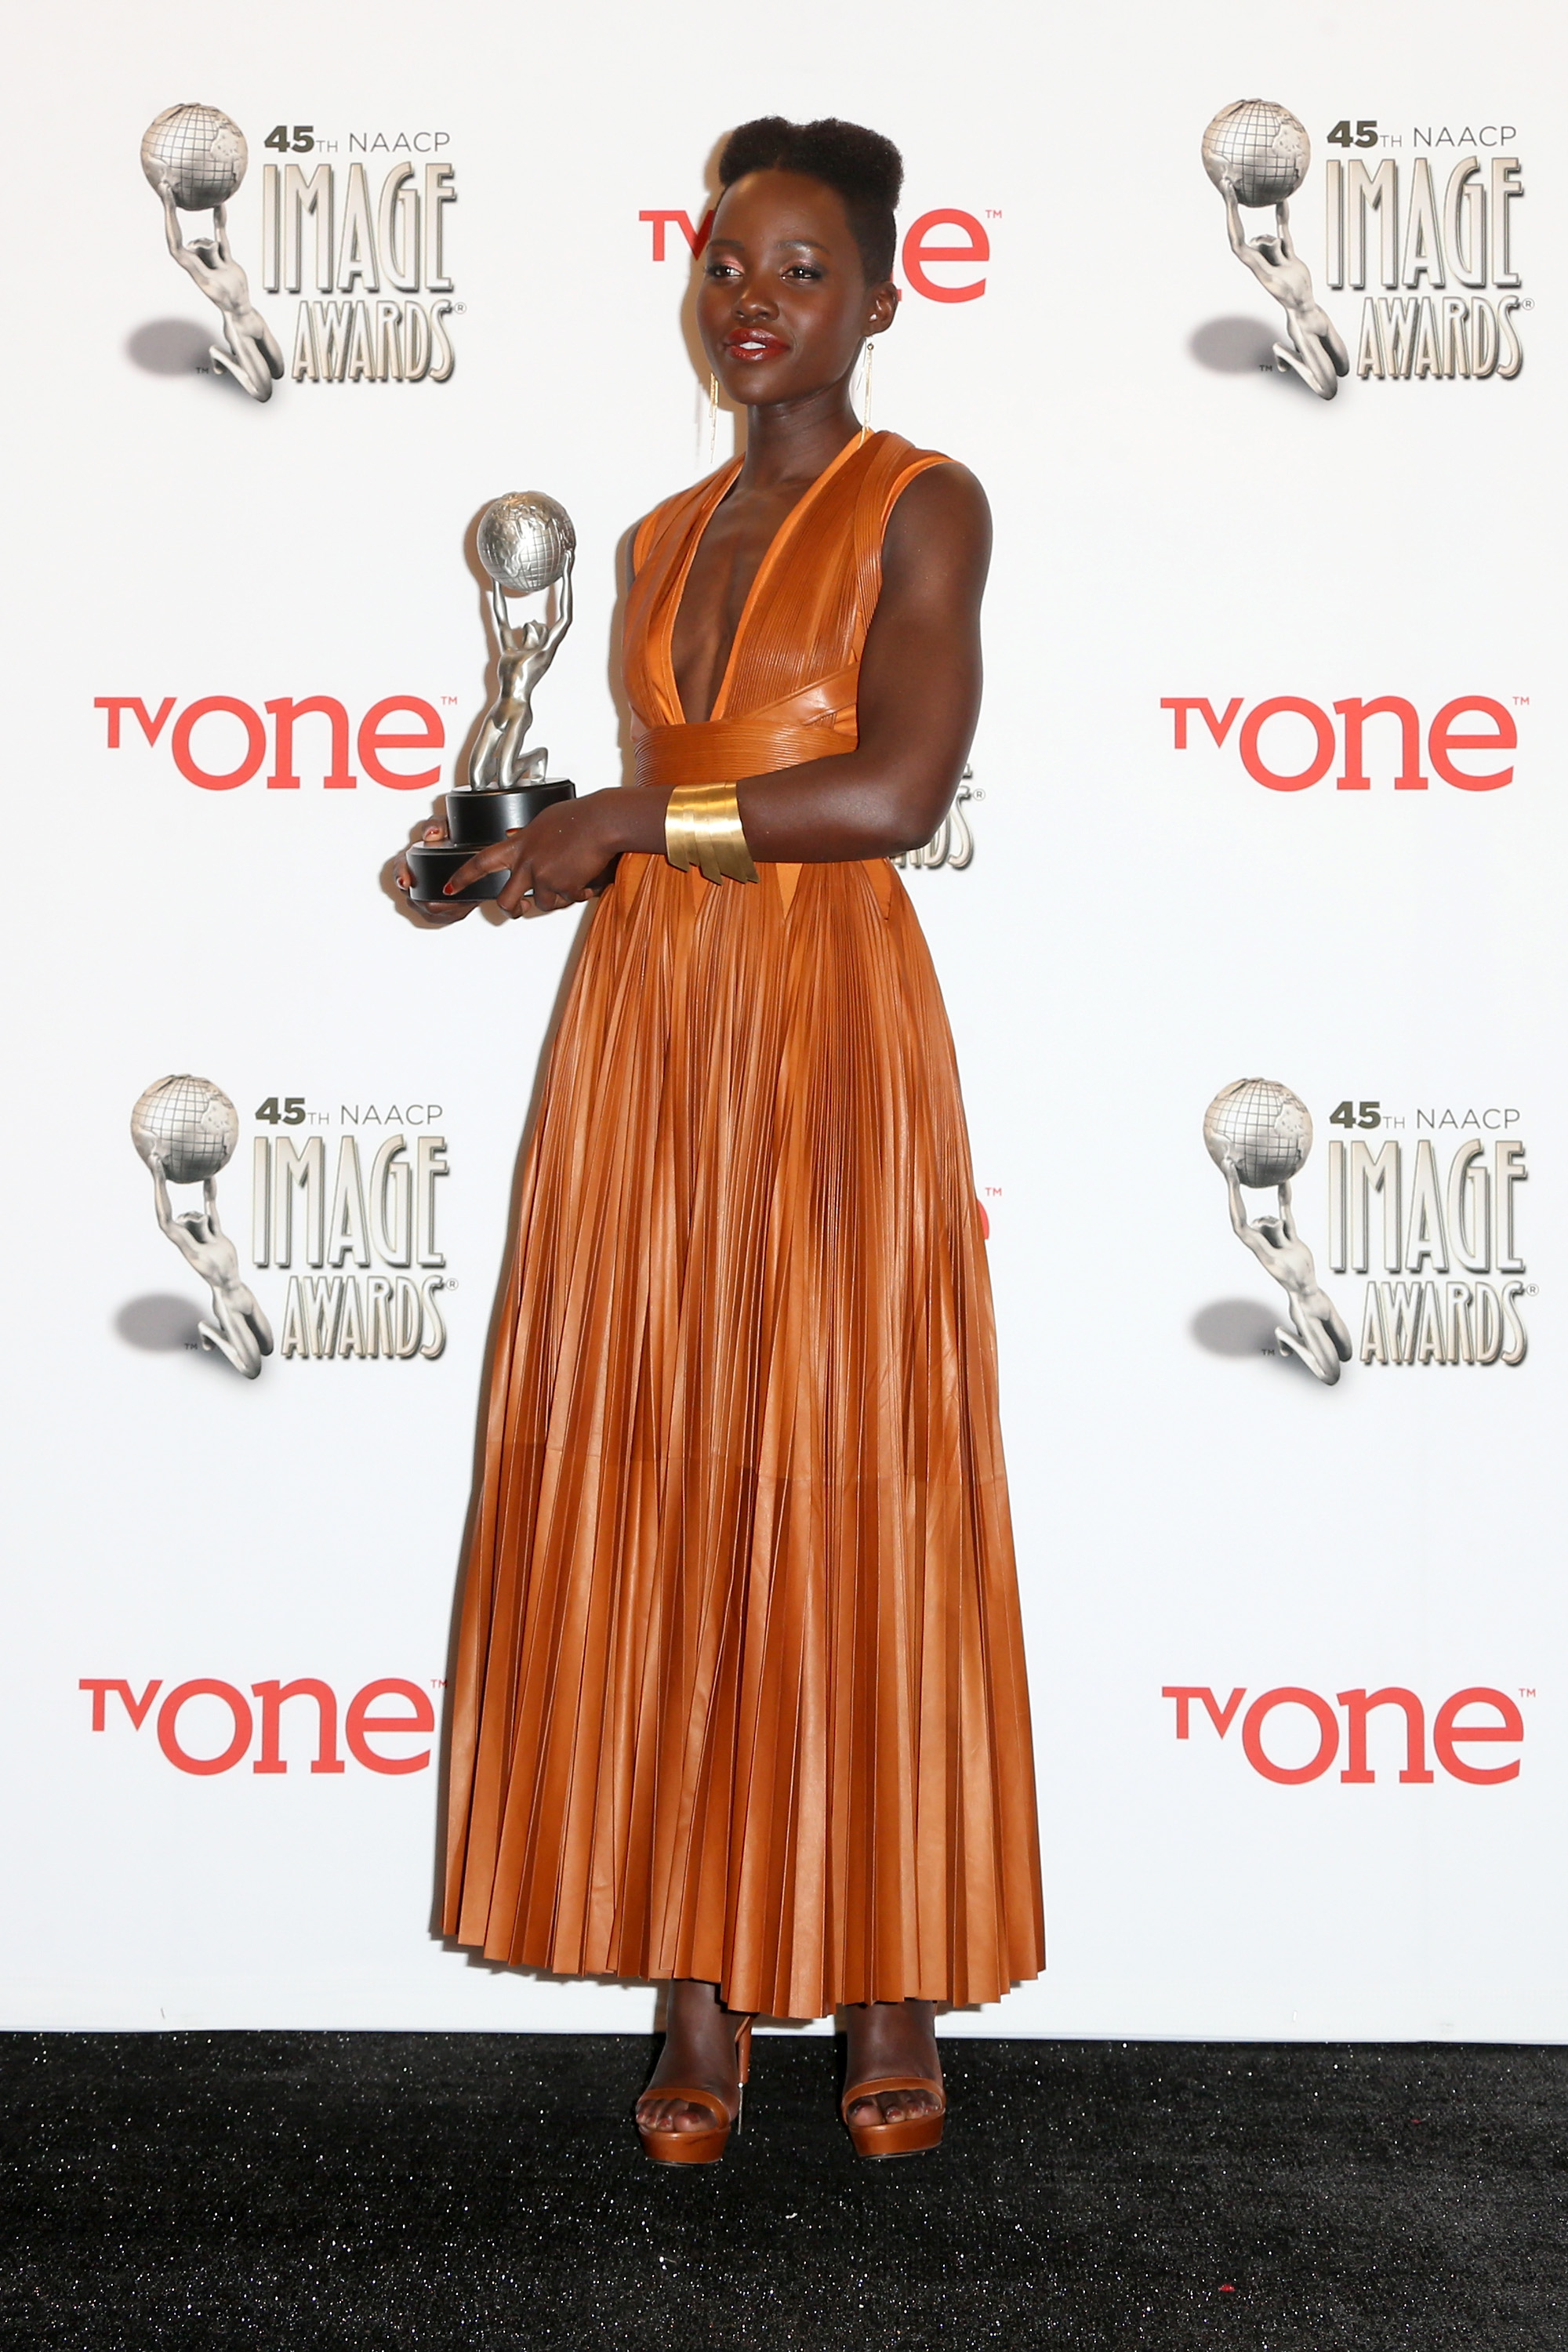 45th NAACP Image Awards Presented By TV One - Press Room